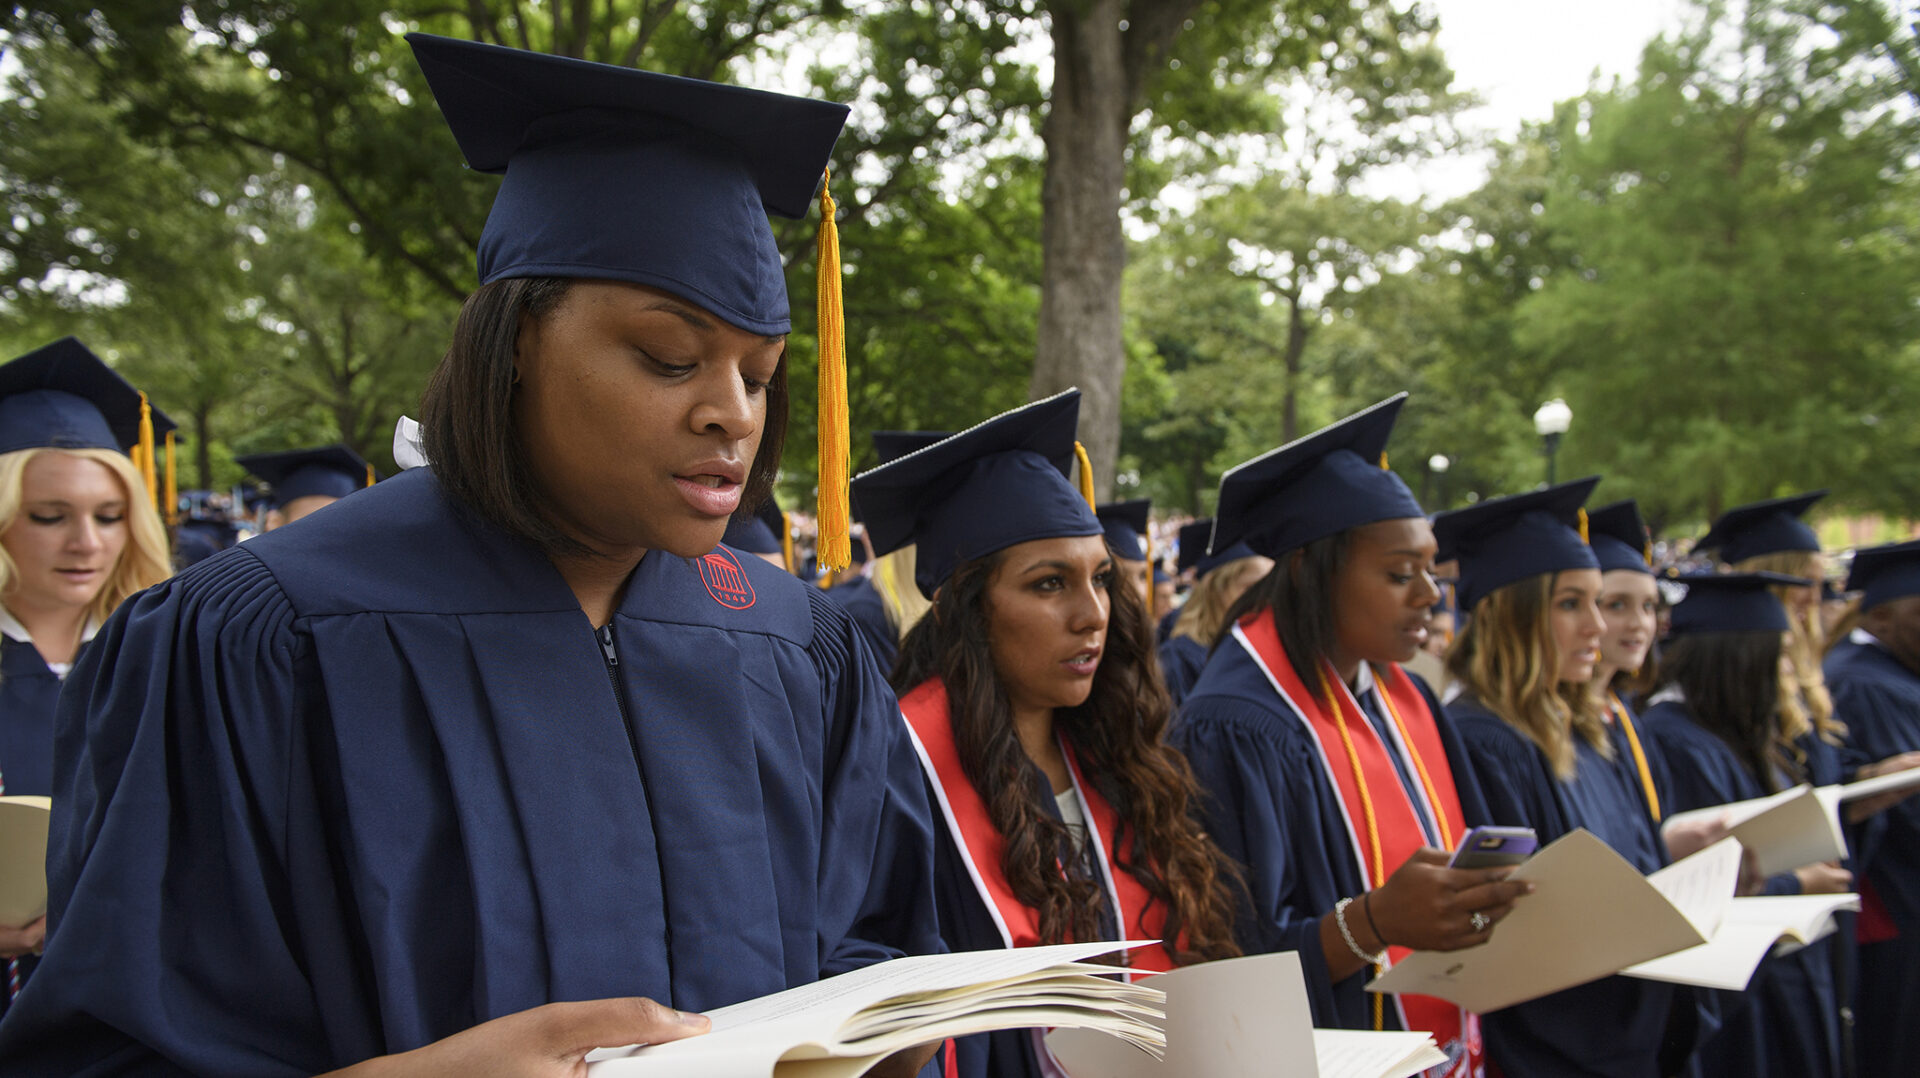 Ole Miss Graduation 2020.Everything You Need To Know For Ole Miss Graduation Day